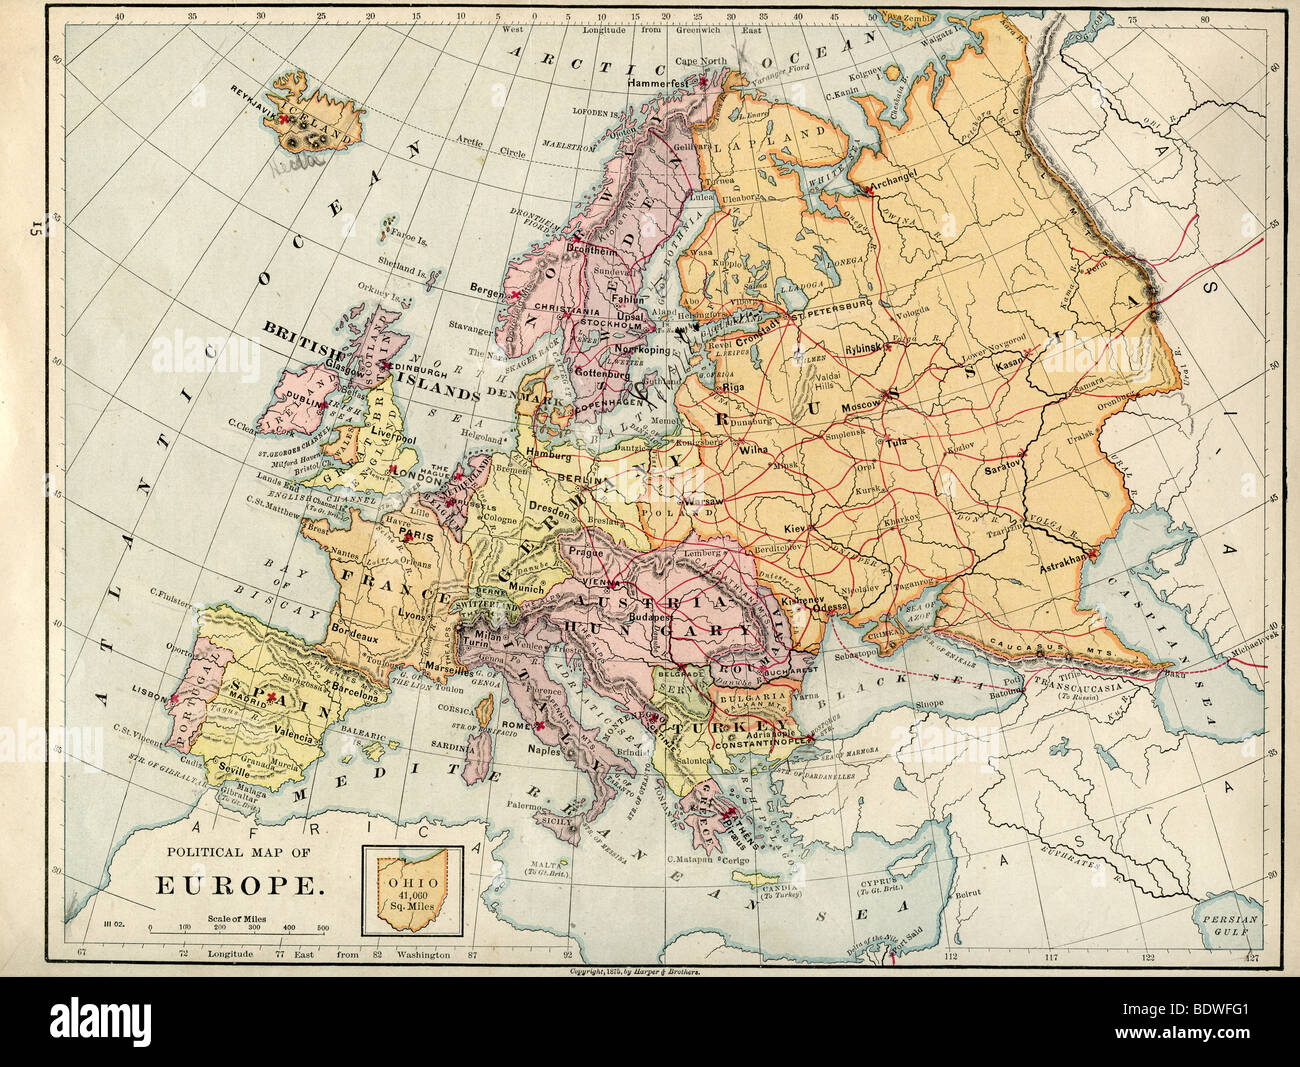 map of europe 1875 Original old map of Europe from 1875 geography textbook Stock